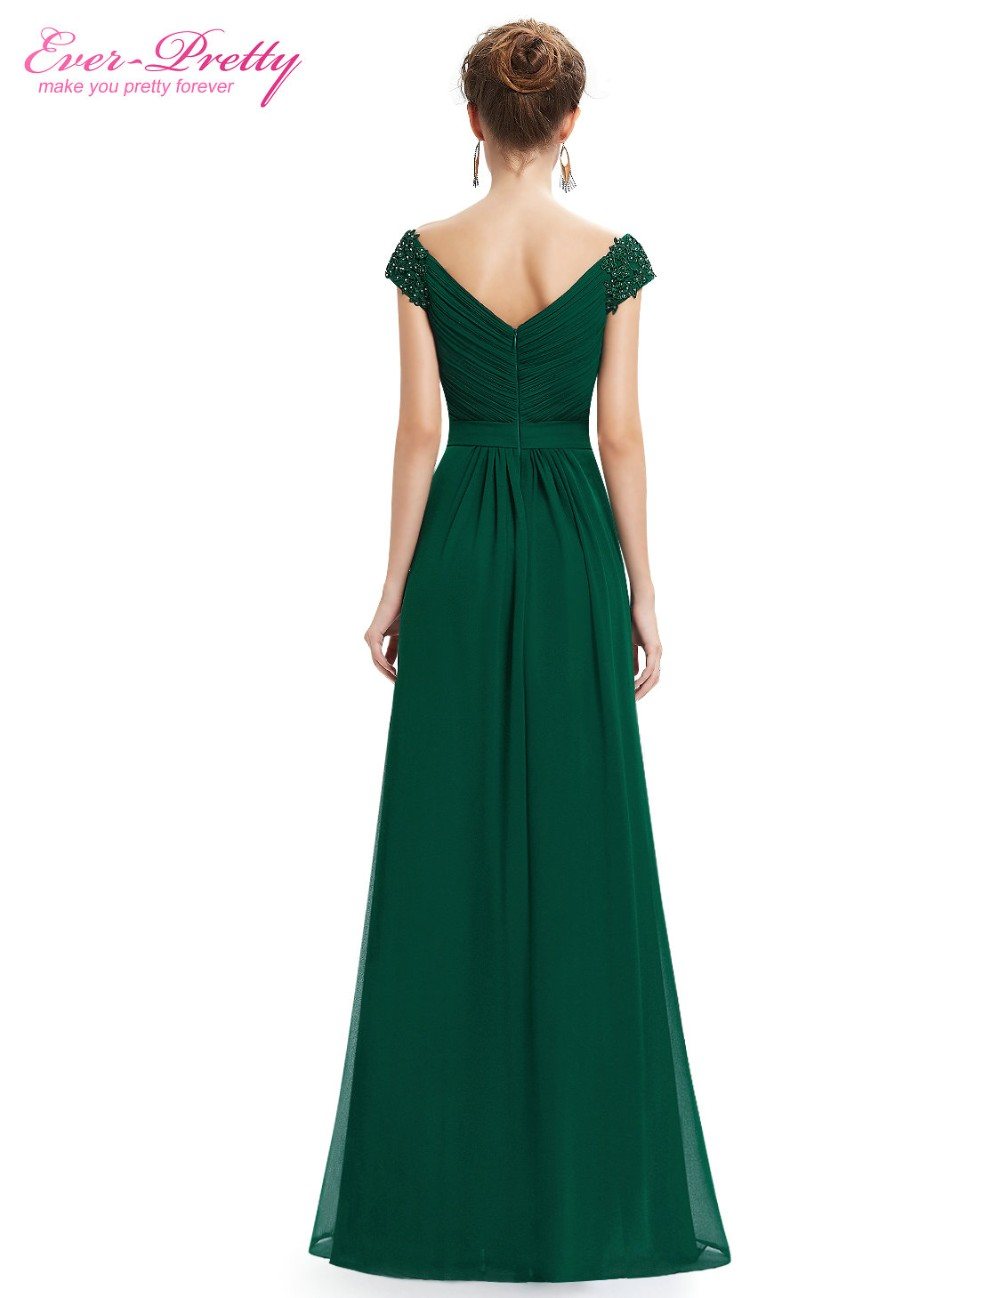 17aa39a16d Ever Pretty Evening Dresses EP08633 Women Elegant Sexy Beading Deep V neck  Long Evening Gown 2018 Chiffon Dress robe de soiree-in Evening Dresses from  ...